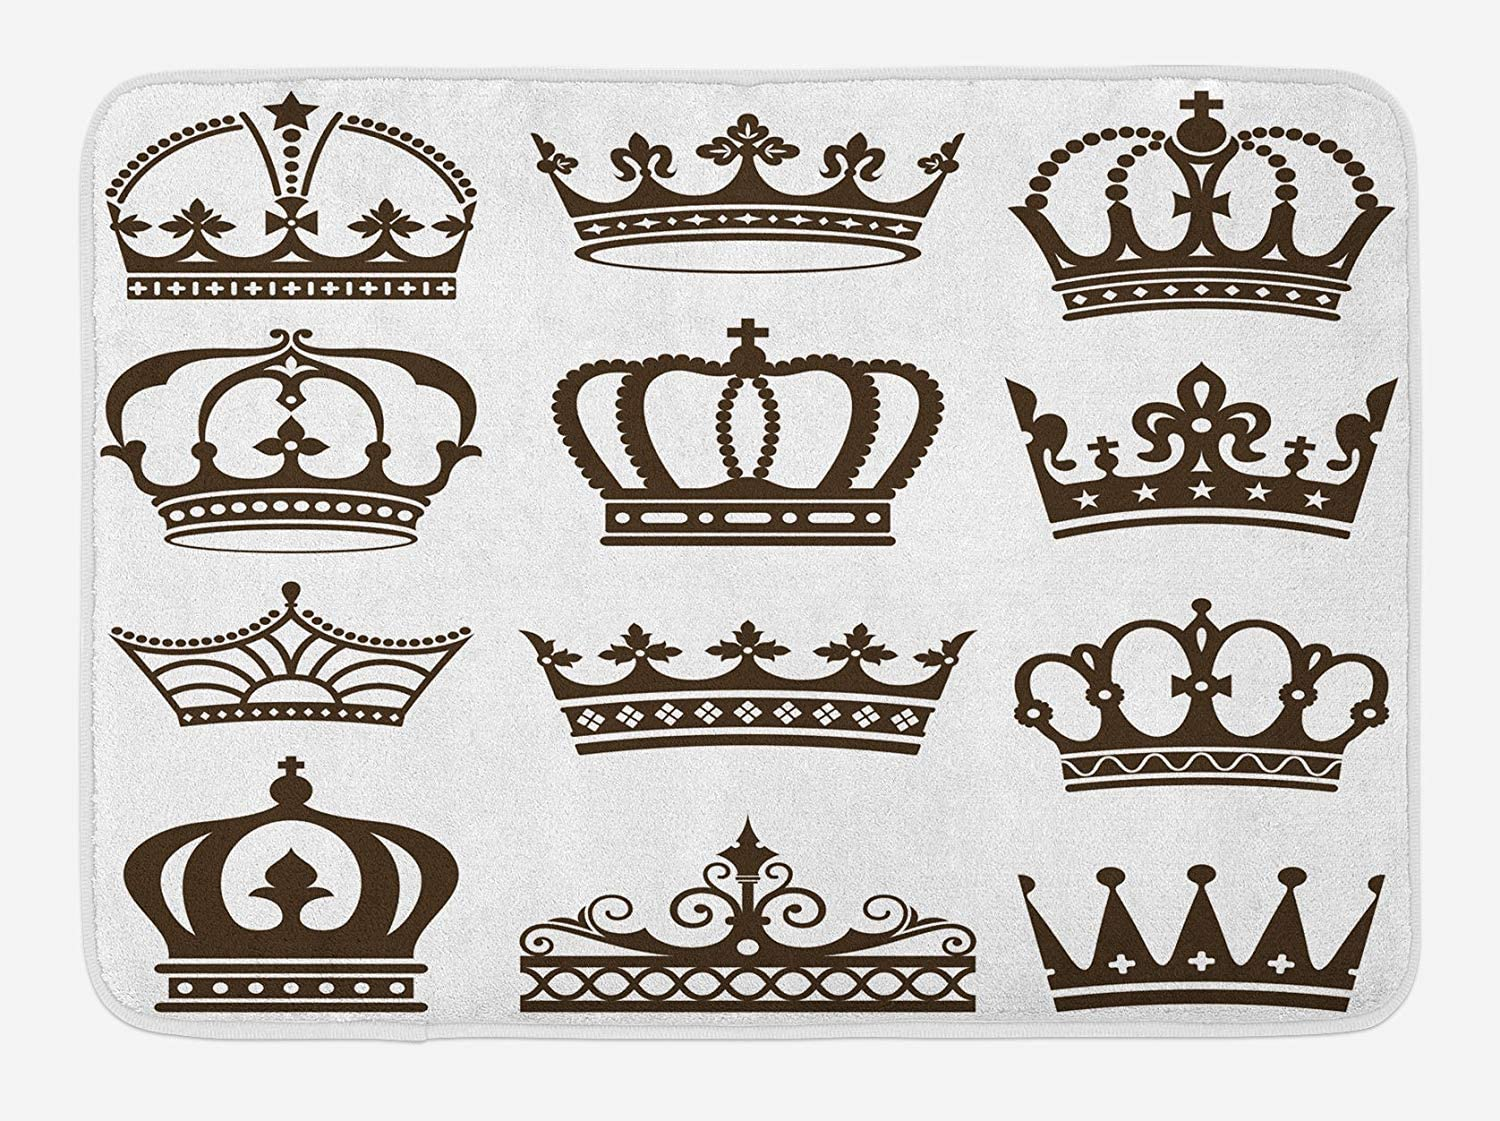 Amazon Com Cdhbh Royal Queen For The Crown Prince Design Cartoon Headdress Modern Bathroom Home Decoration Non Slip Bath Mat Door Mat Flannel Material Outdoor Door Decoration Room Kitchen Dining Disney png baby disney princess cartoon prince and princess princess crowns birthday artículos similares a crown silhouette svg, ai, eps, pdf cutting file,princess crown svg vector clipart, silueta. amazon com